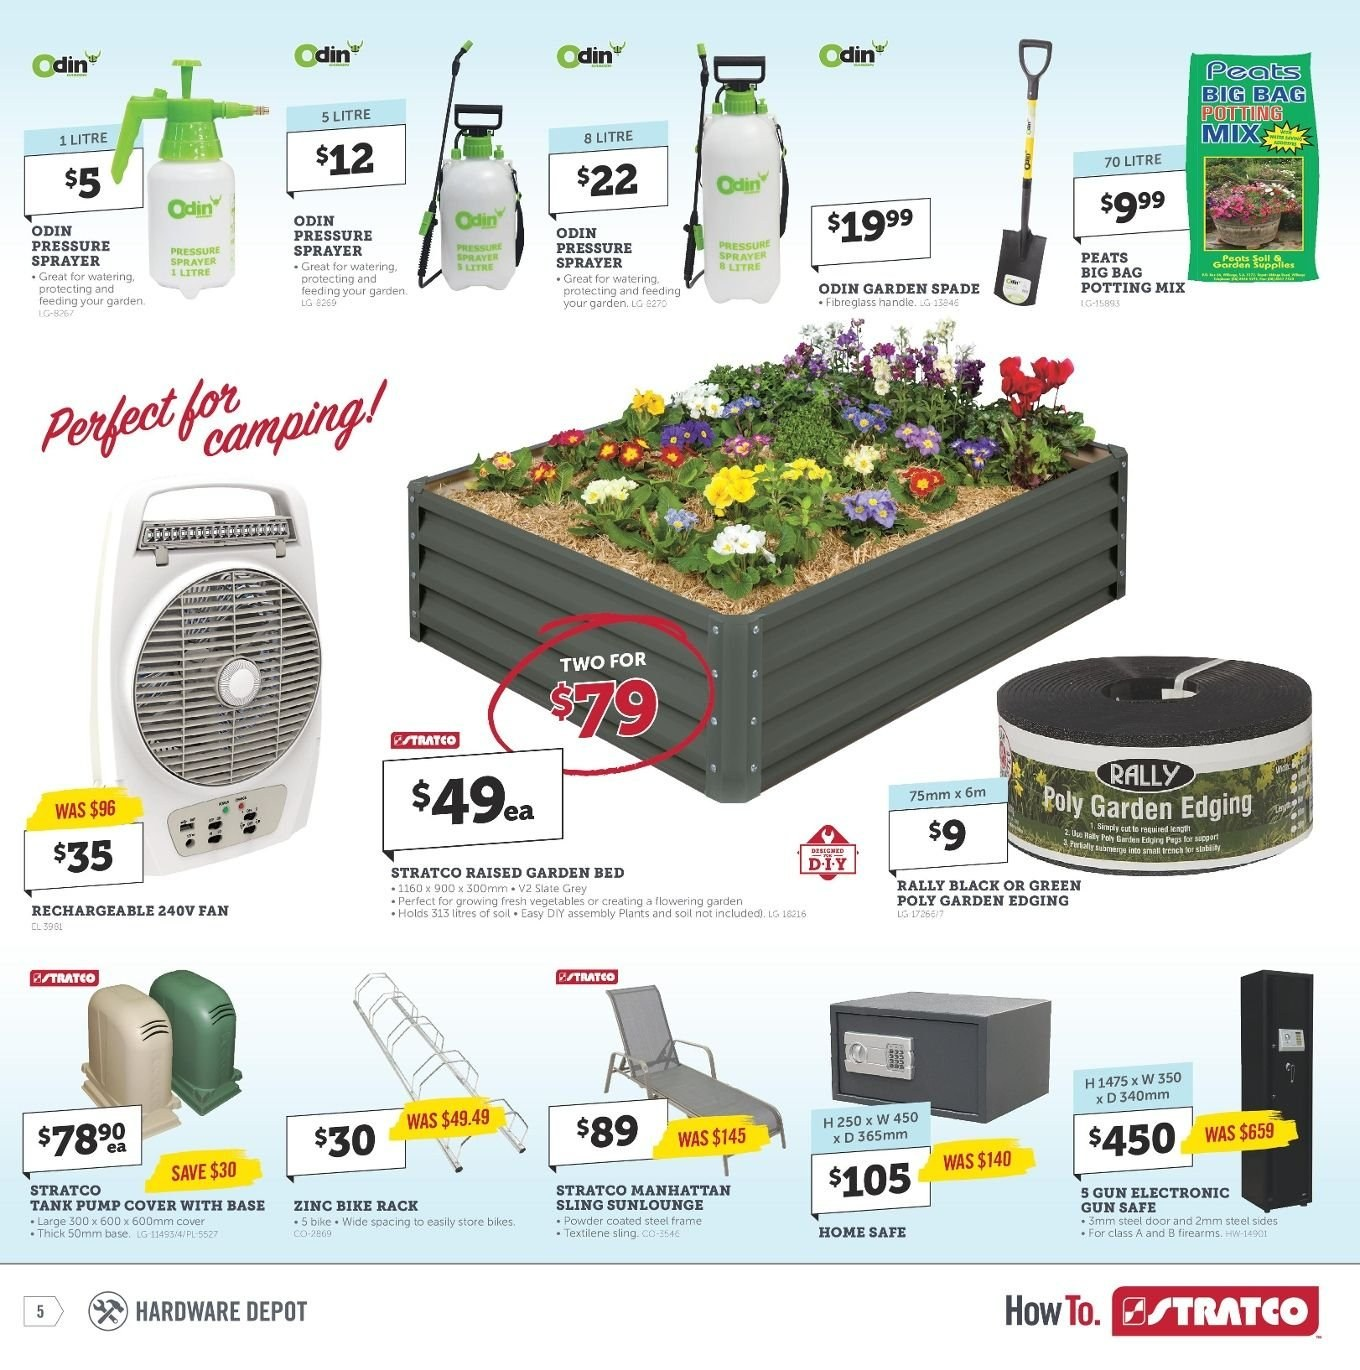 Stratco catalogue and weekly specials 15 3 2019 - 28 4 2019 | Au